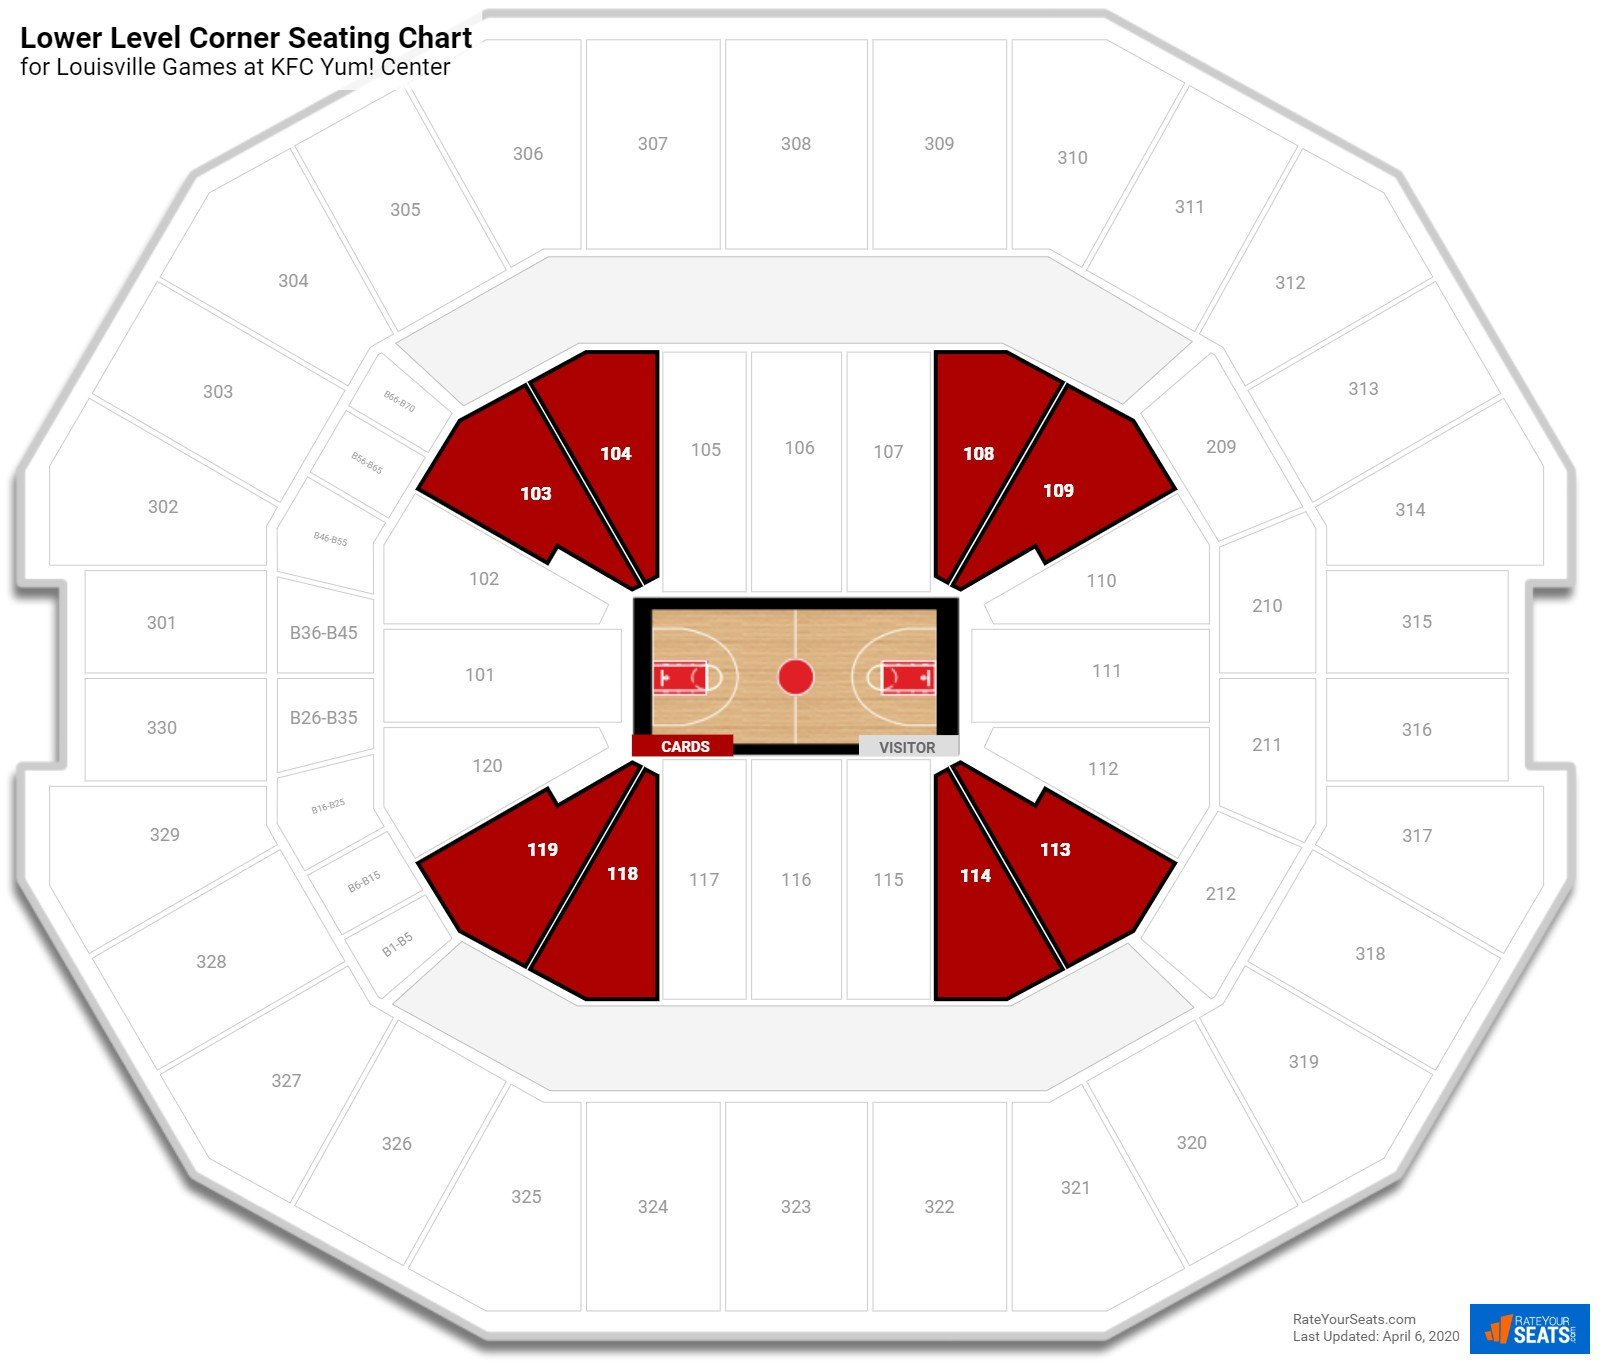 KFC Yum! Center Lower Level Corner seating chart